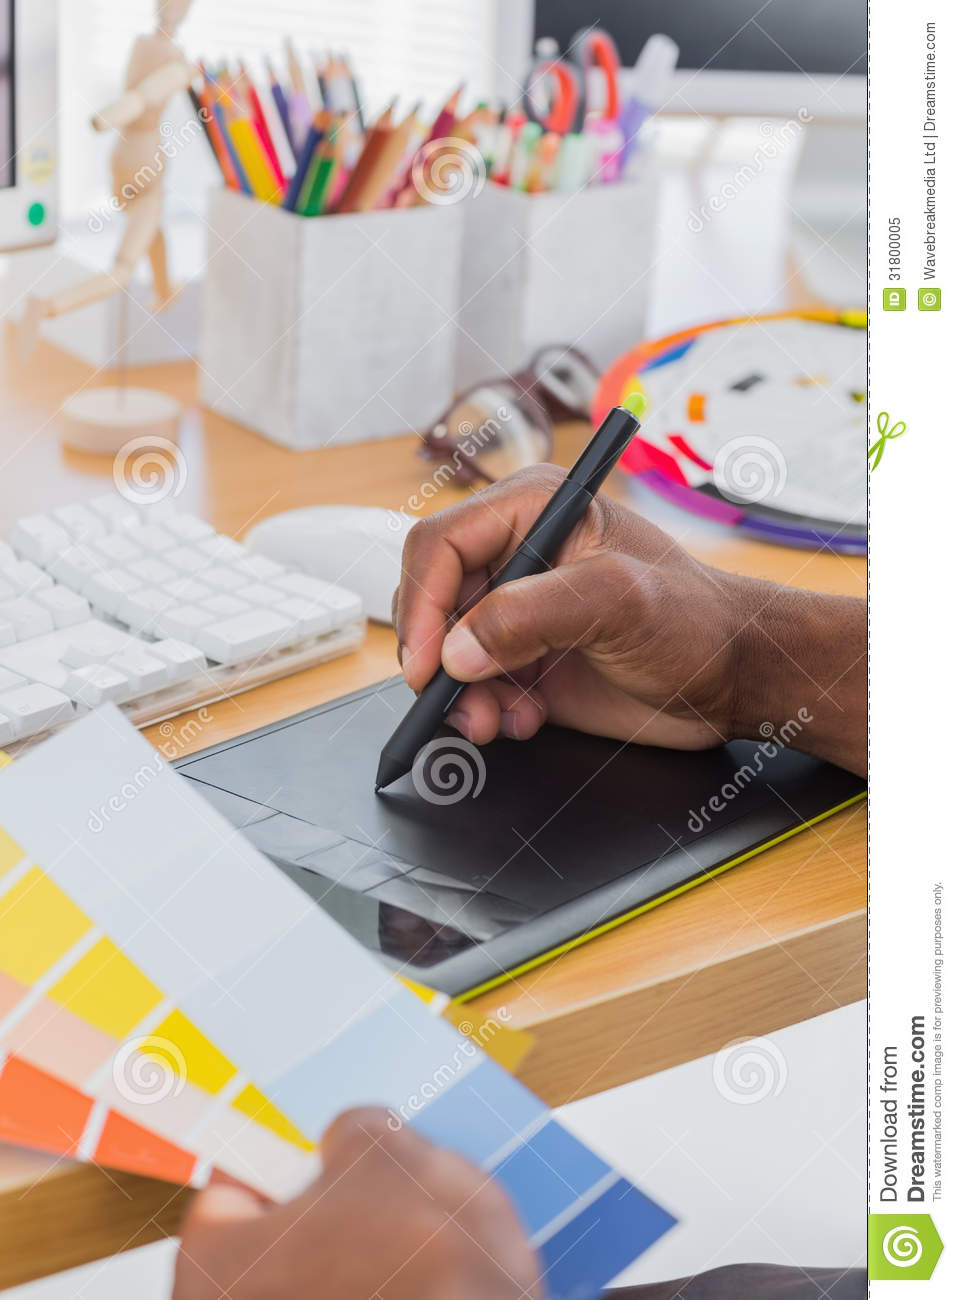 Interior designer with graphics tablet and colour chart royalty free stock photo image 31800005 for Best tablet for interior designers